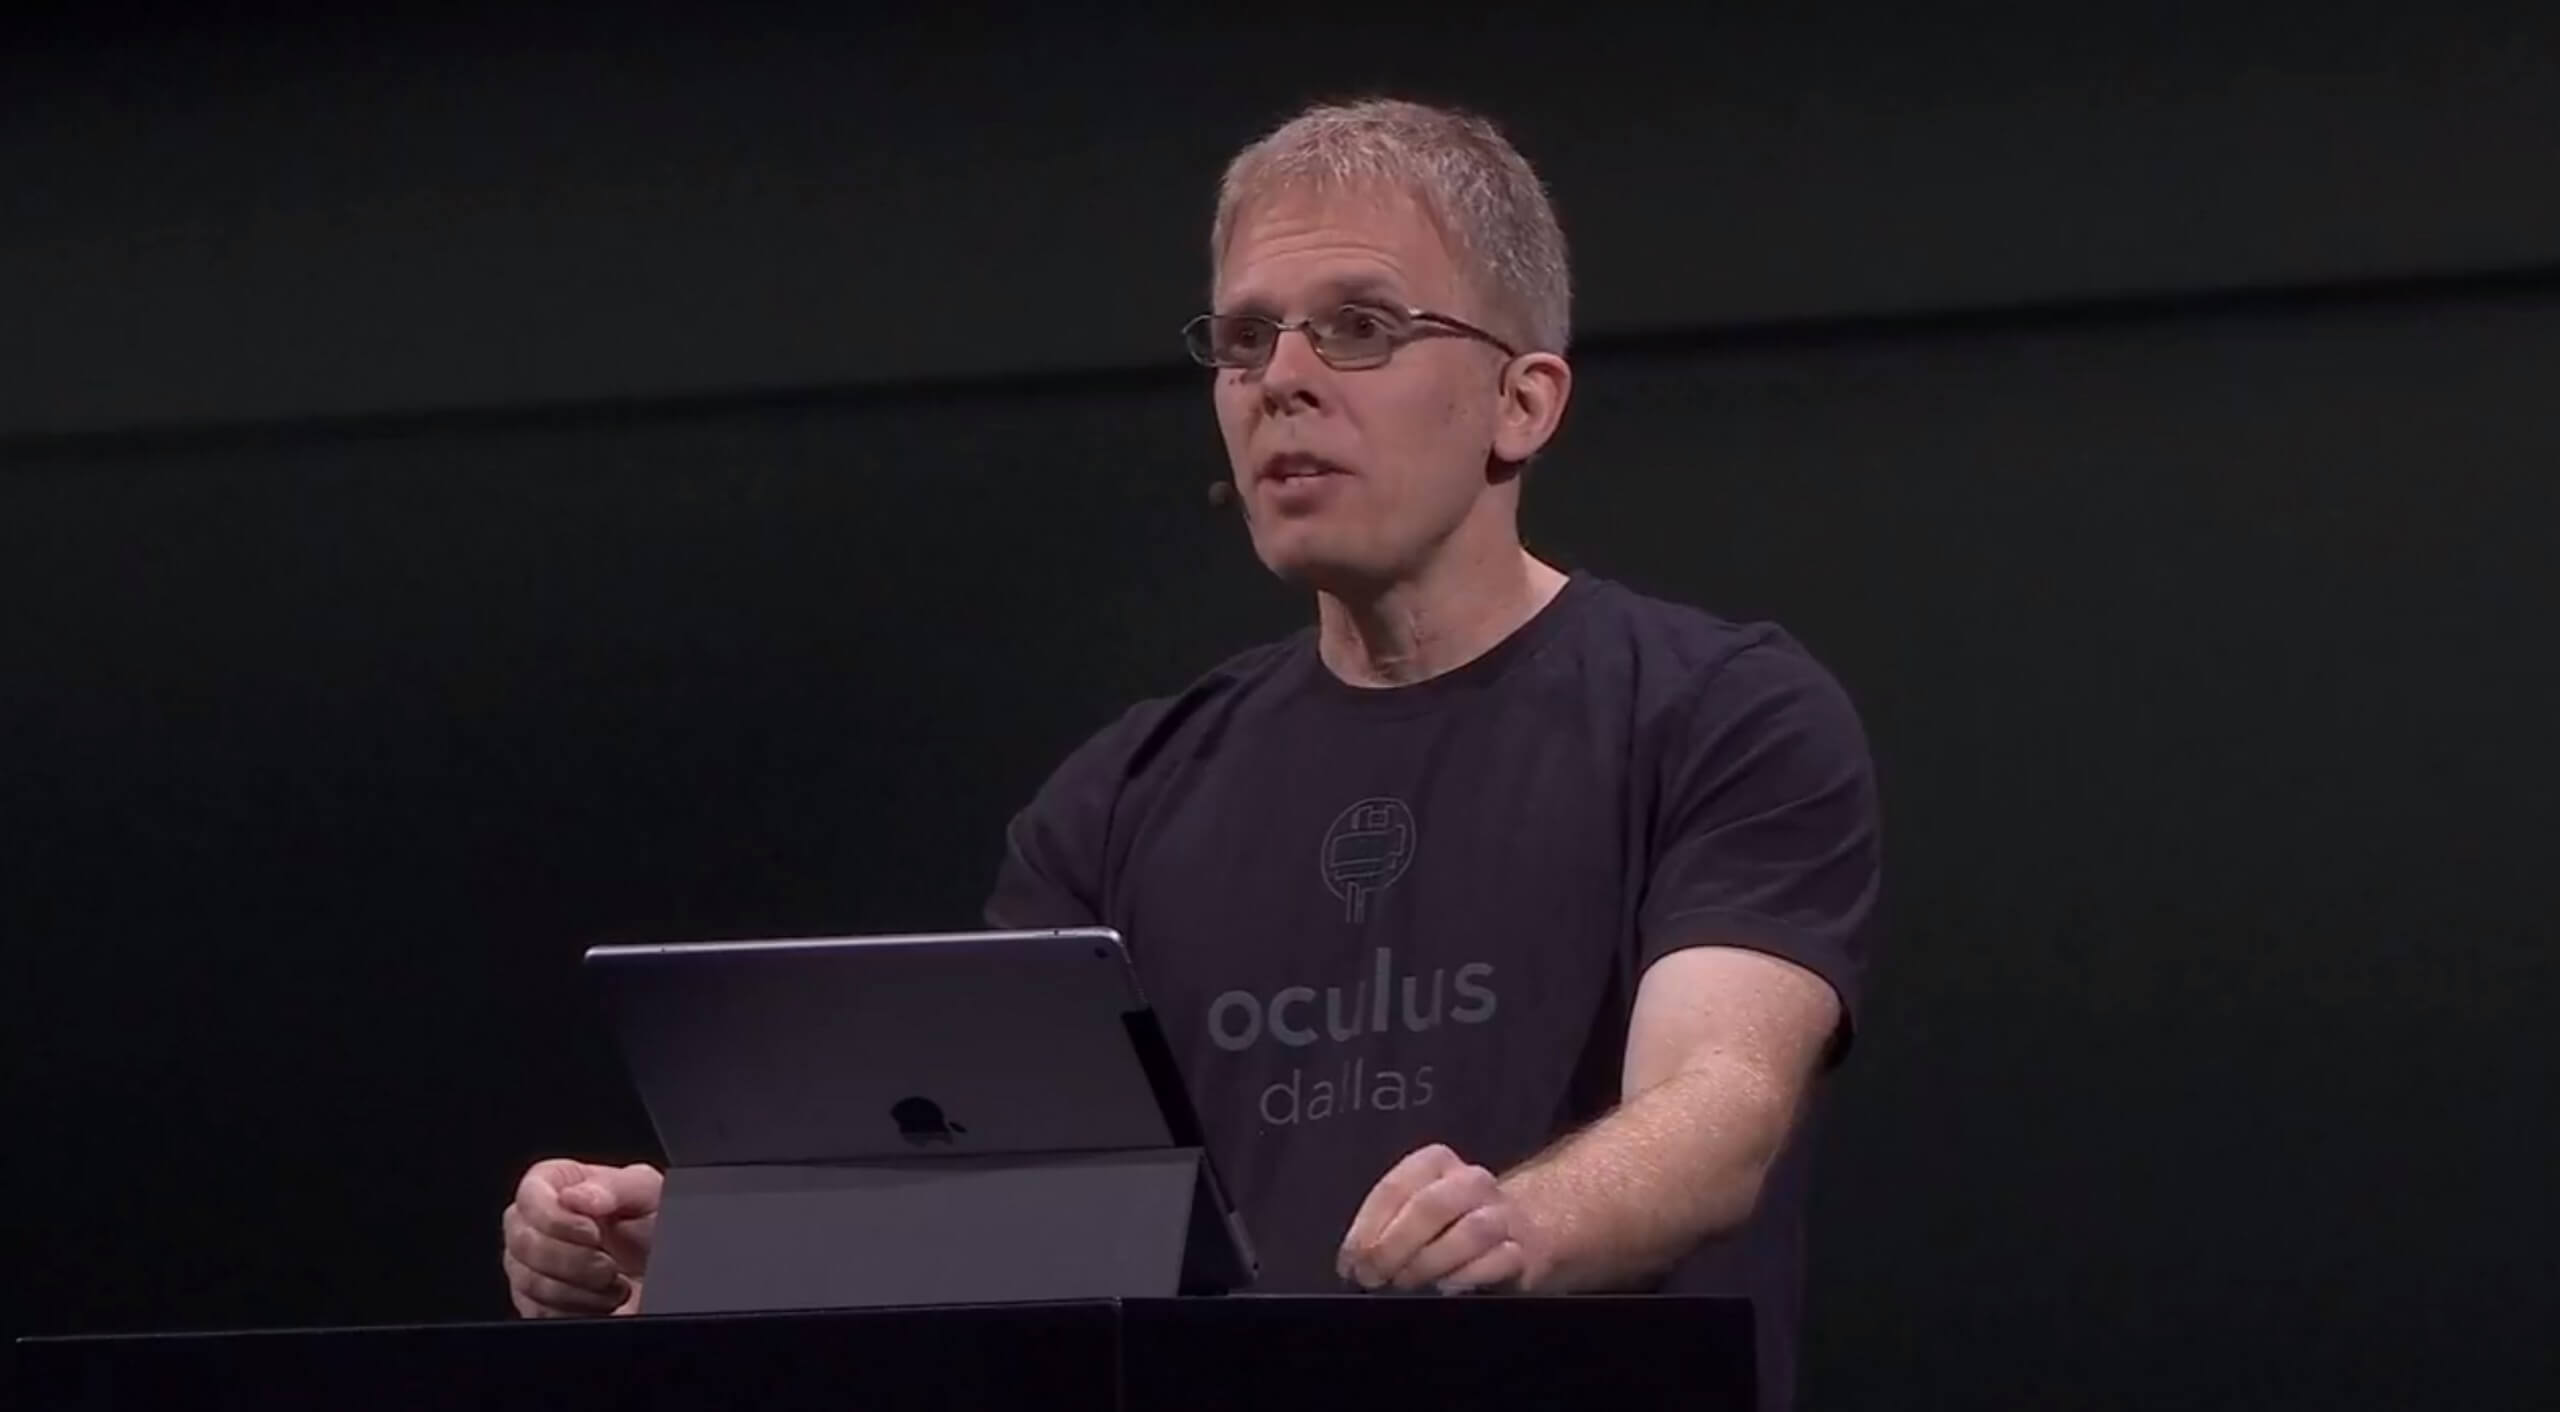 ZeniMax settles with John Carmack to end all legal claims by either party